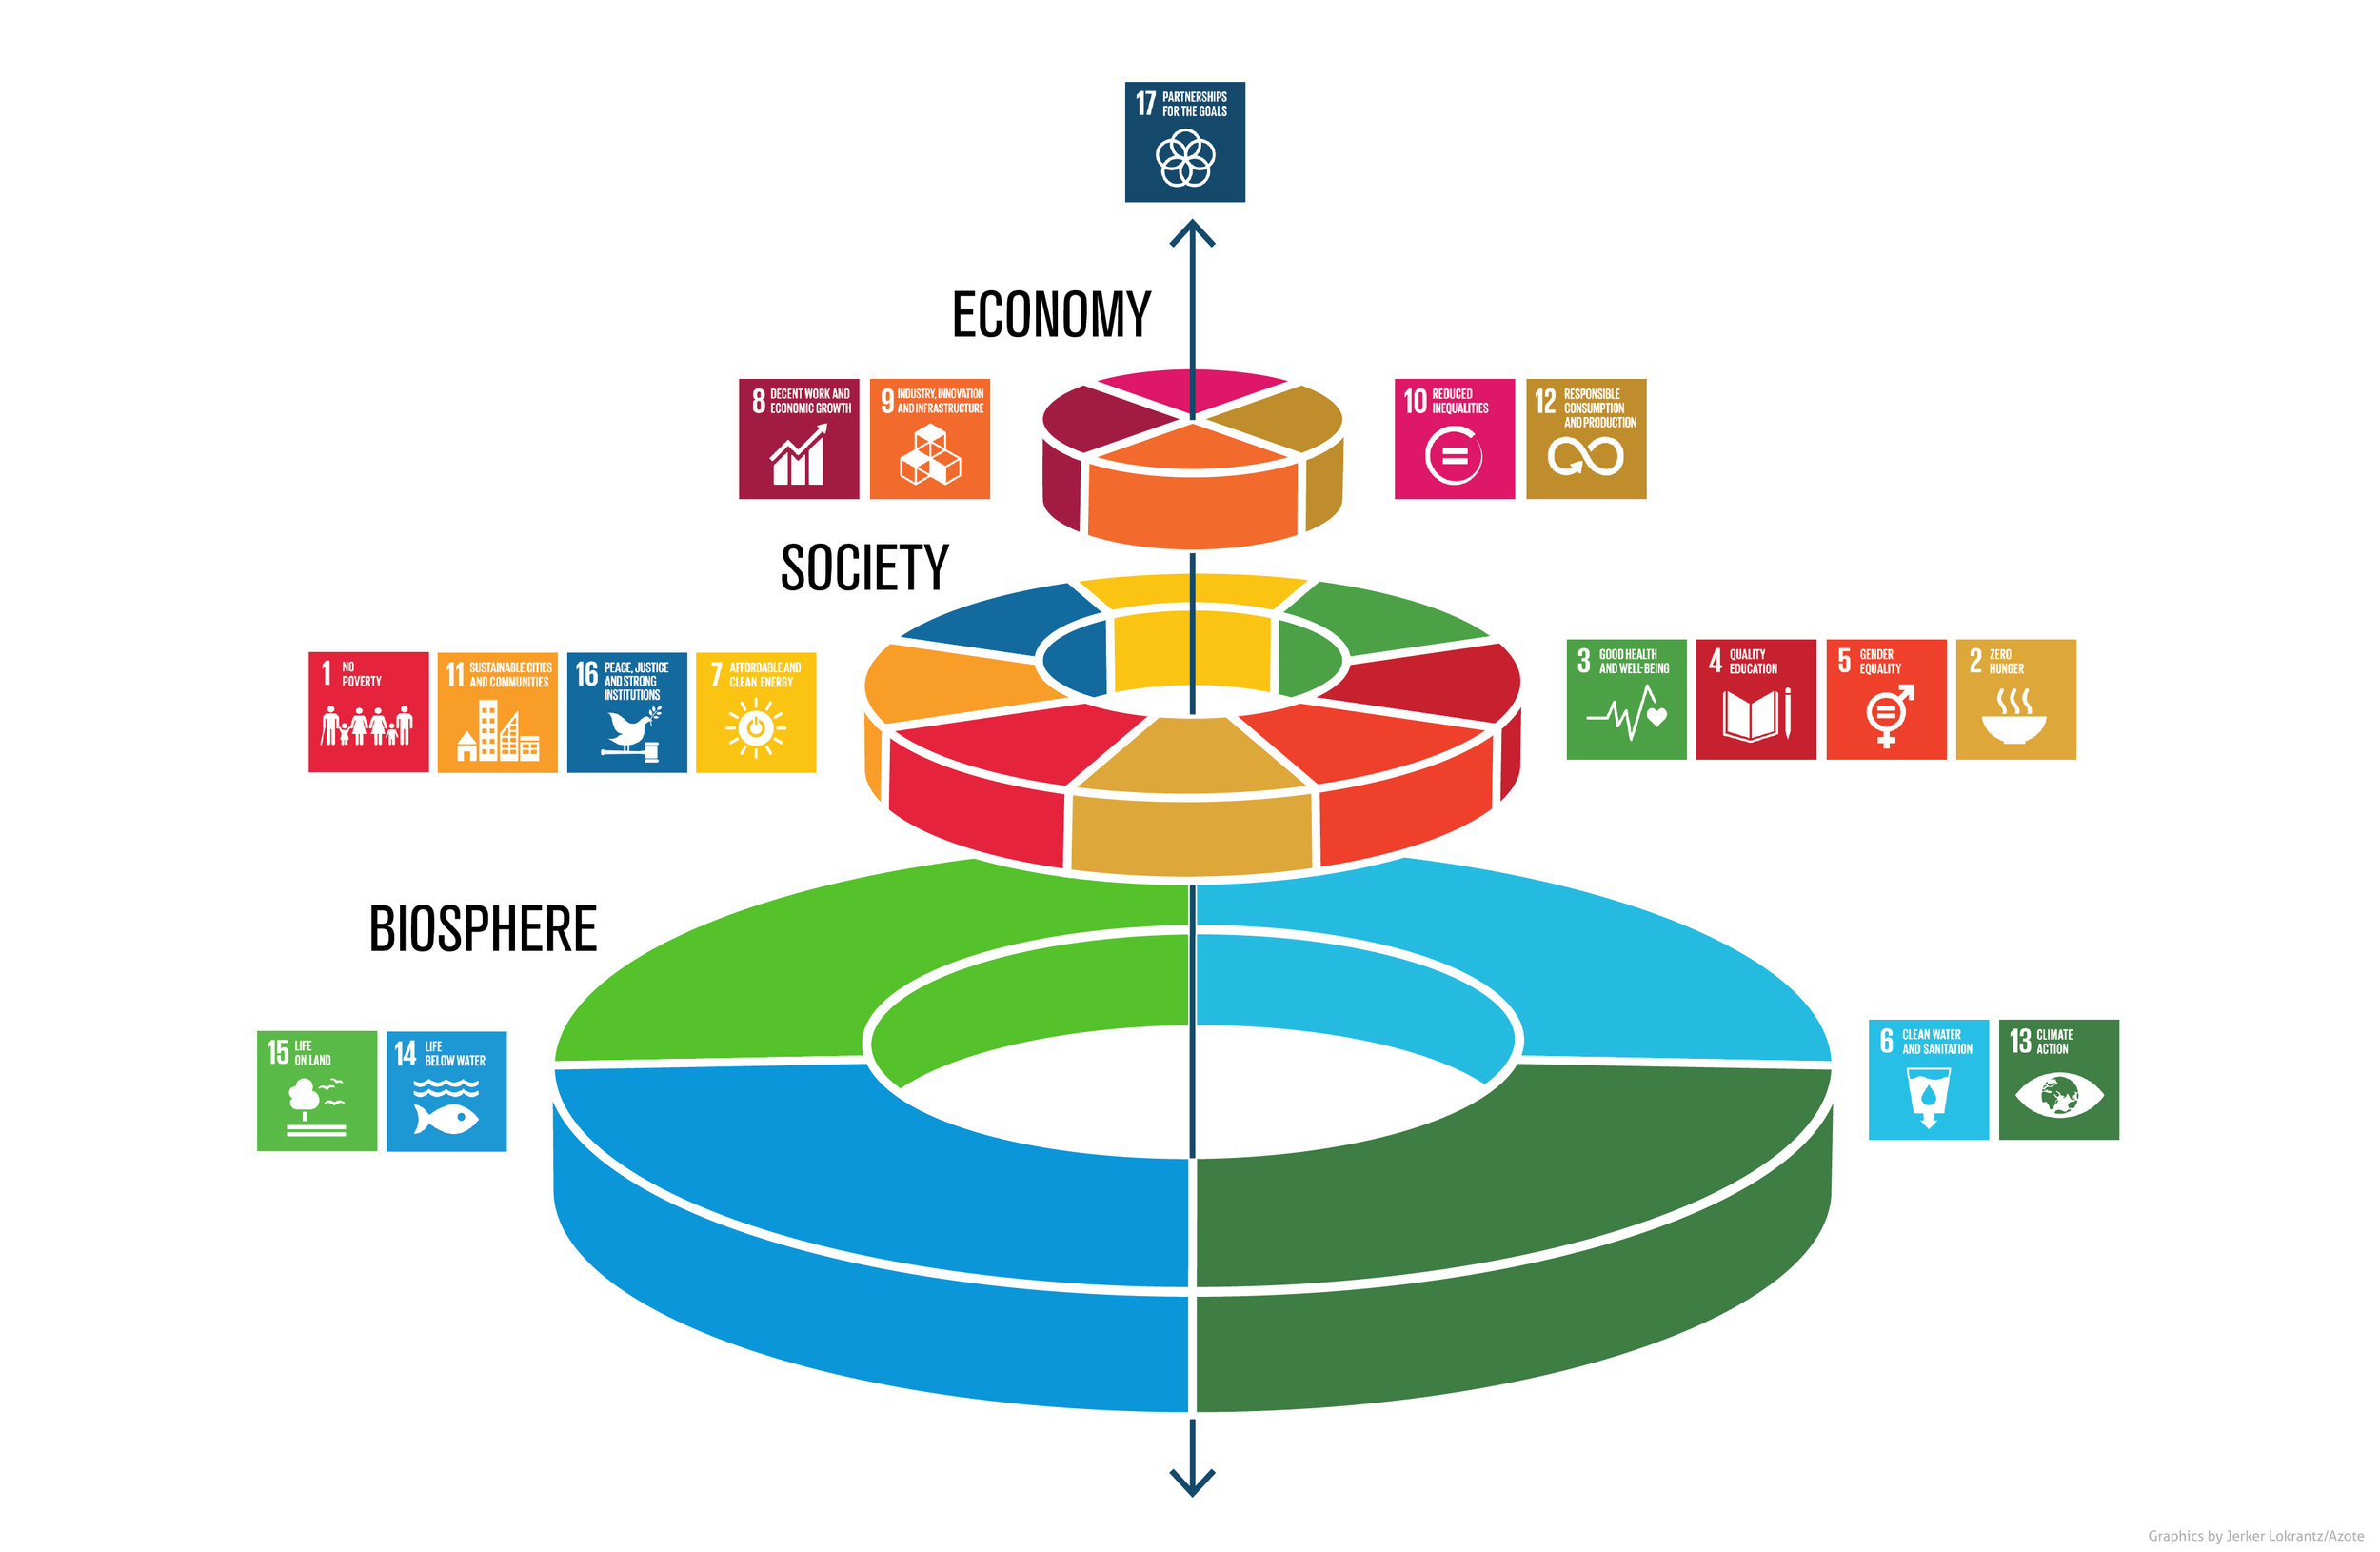 The Wedding Cake Model applied to the Sustainable Development Goals. StockholmResilience Centre_Johan Rockström.